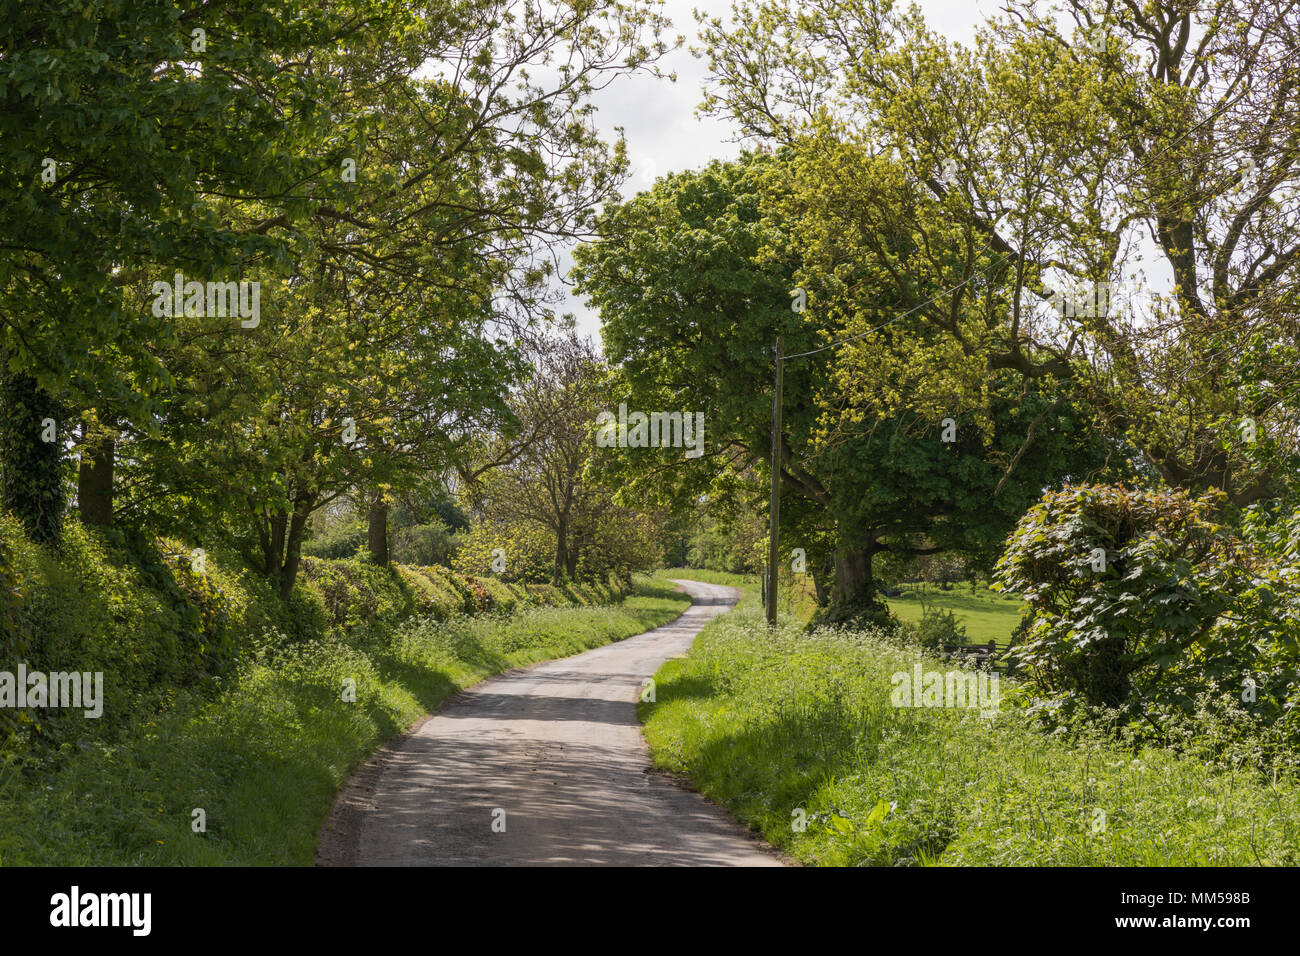 Rural Northamptonshire - a narrow country lane winds between wide, green verges, hedges and trees. The sun casts shadows on the lane. - Stock Image